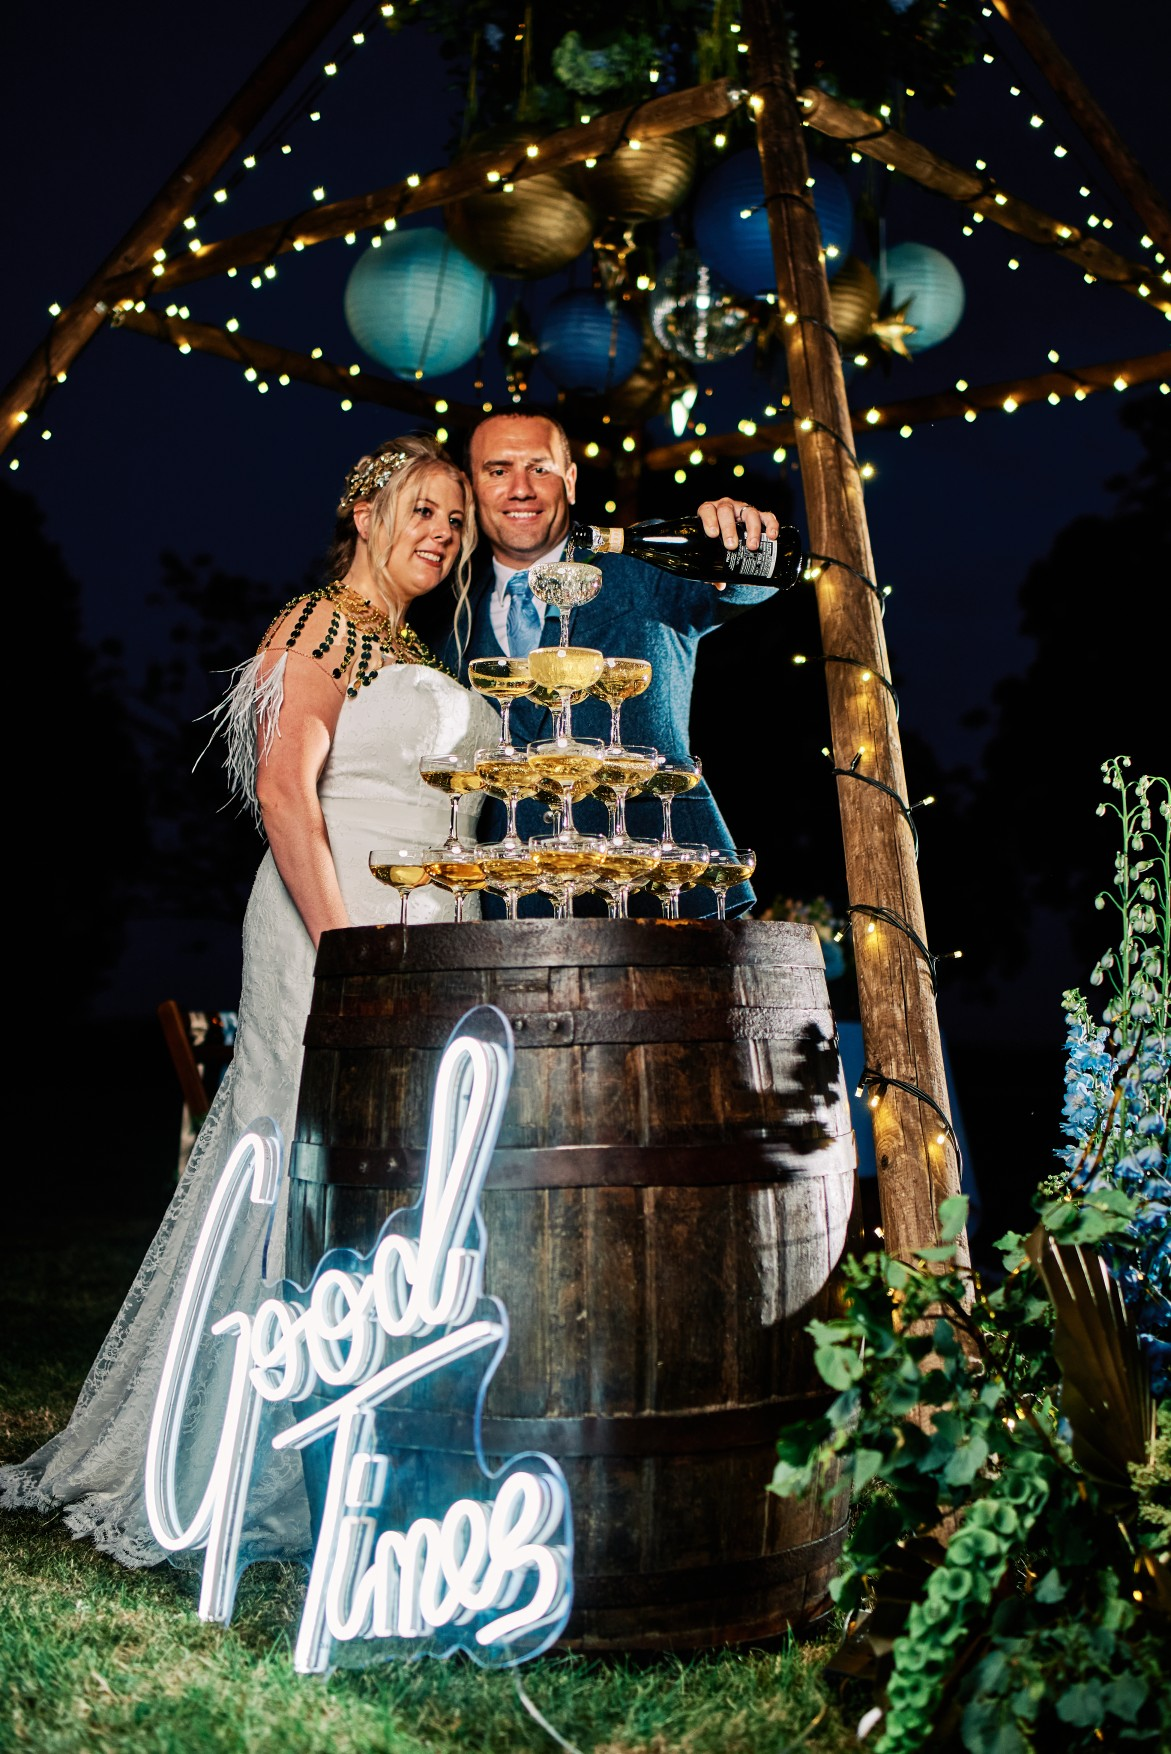 nhs wedding - paramedic wedding - blue and gold wedding - outdoor wedding - micro wedding - surprise wedding - bride and groom pouring champagne